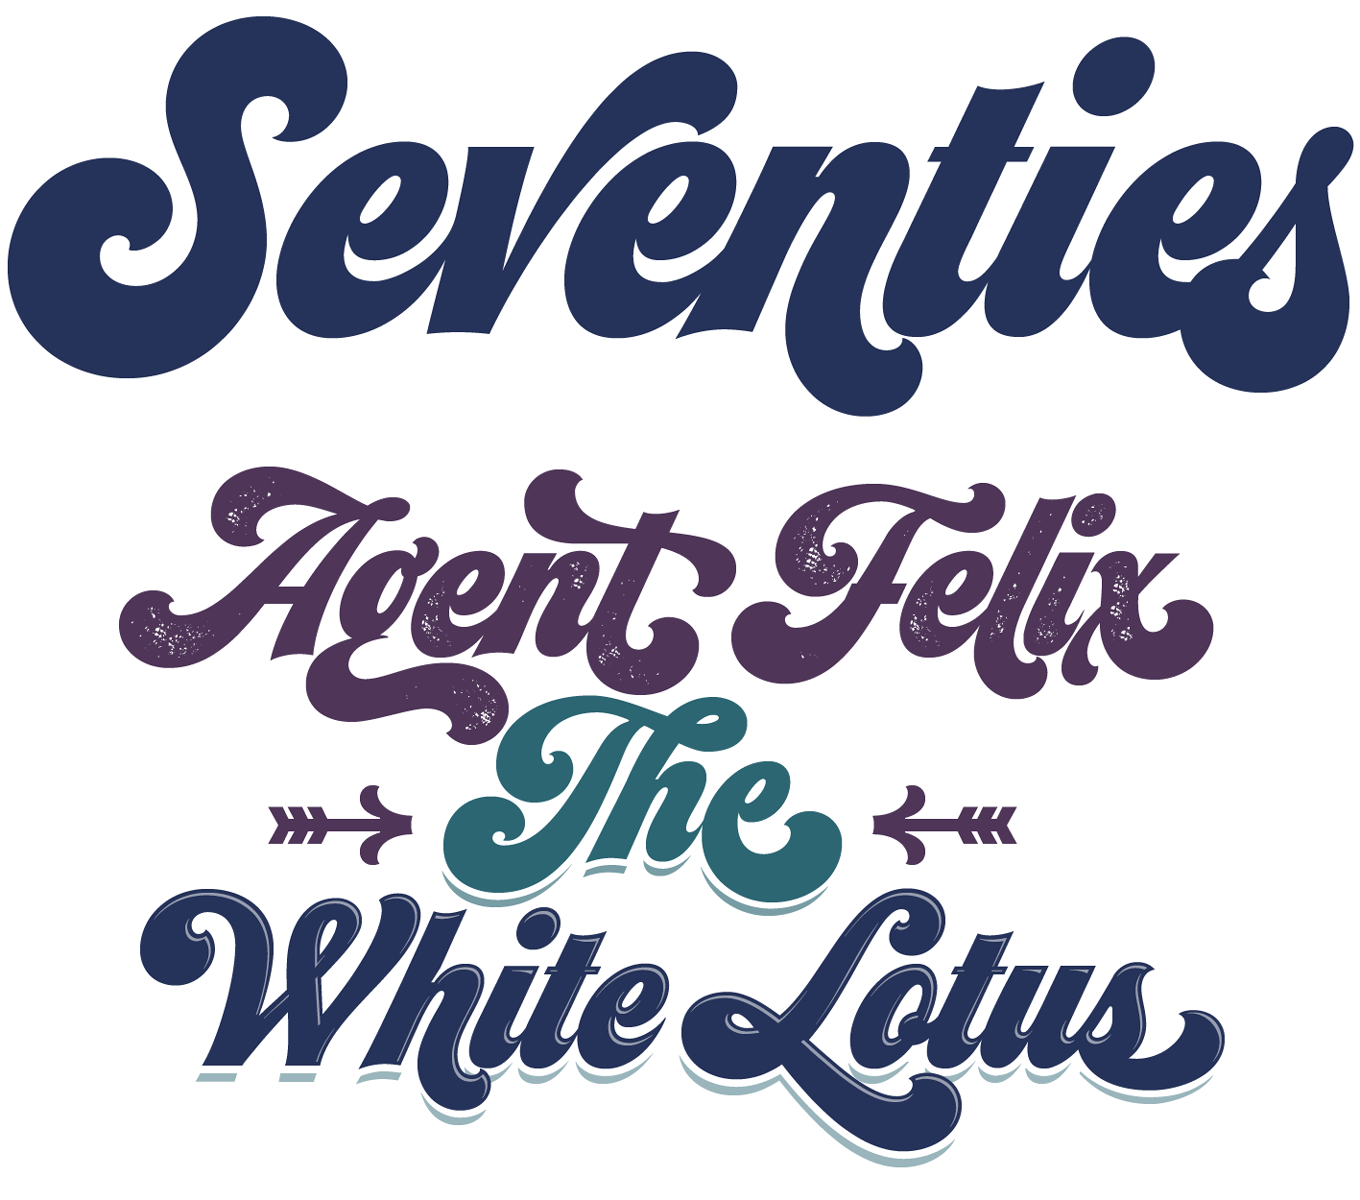 Seventies Font Sample | typography | Typography fonts ...